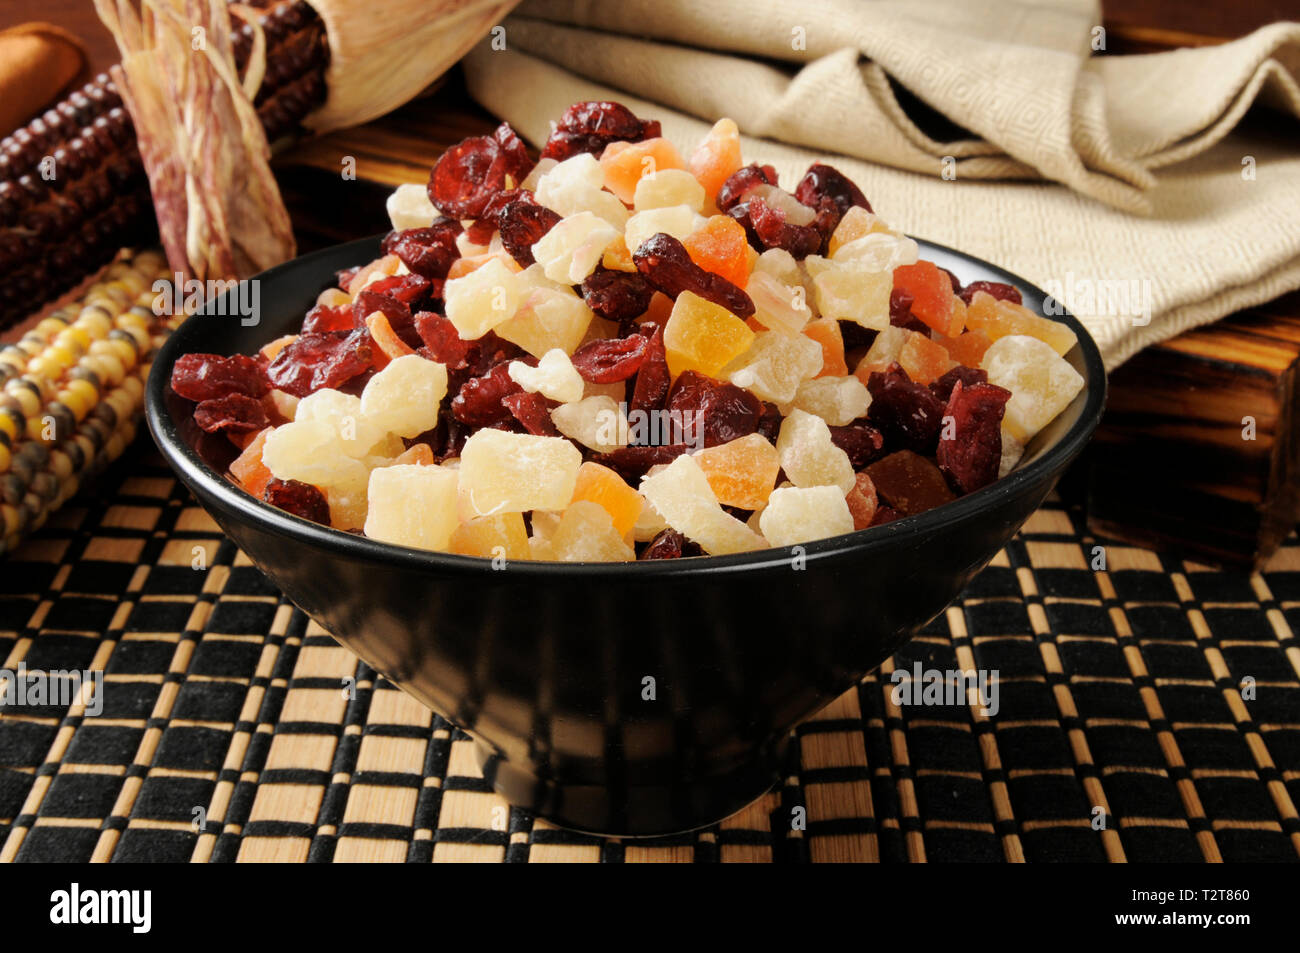 A bowl of dried tropical fruit - Stock Image